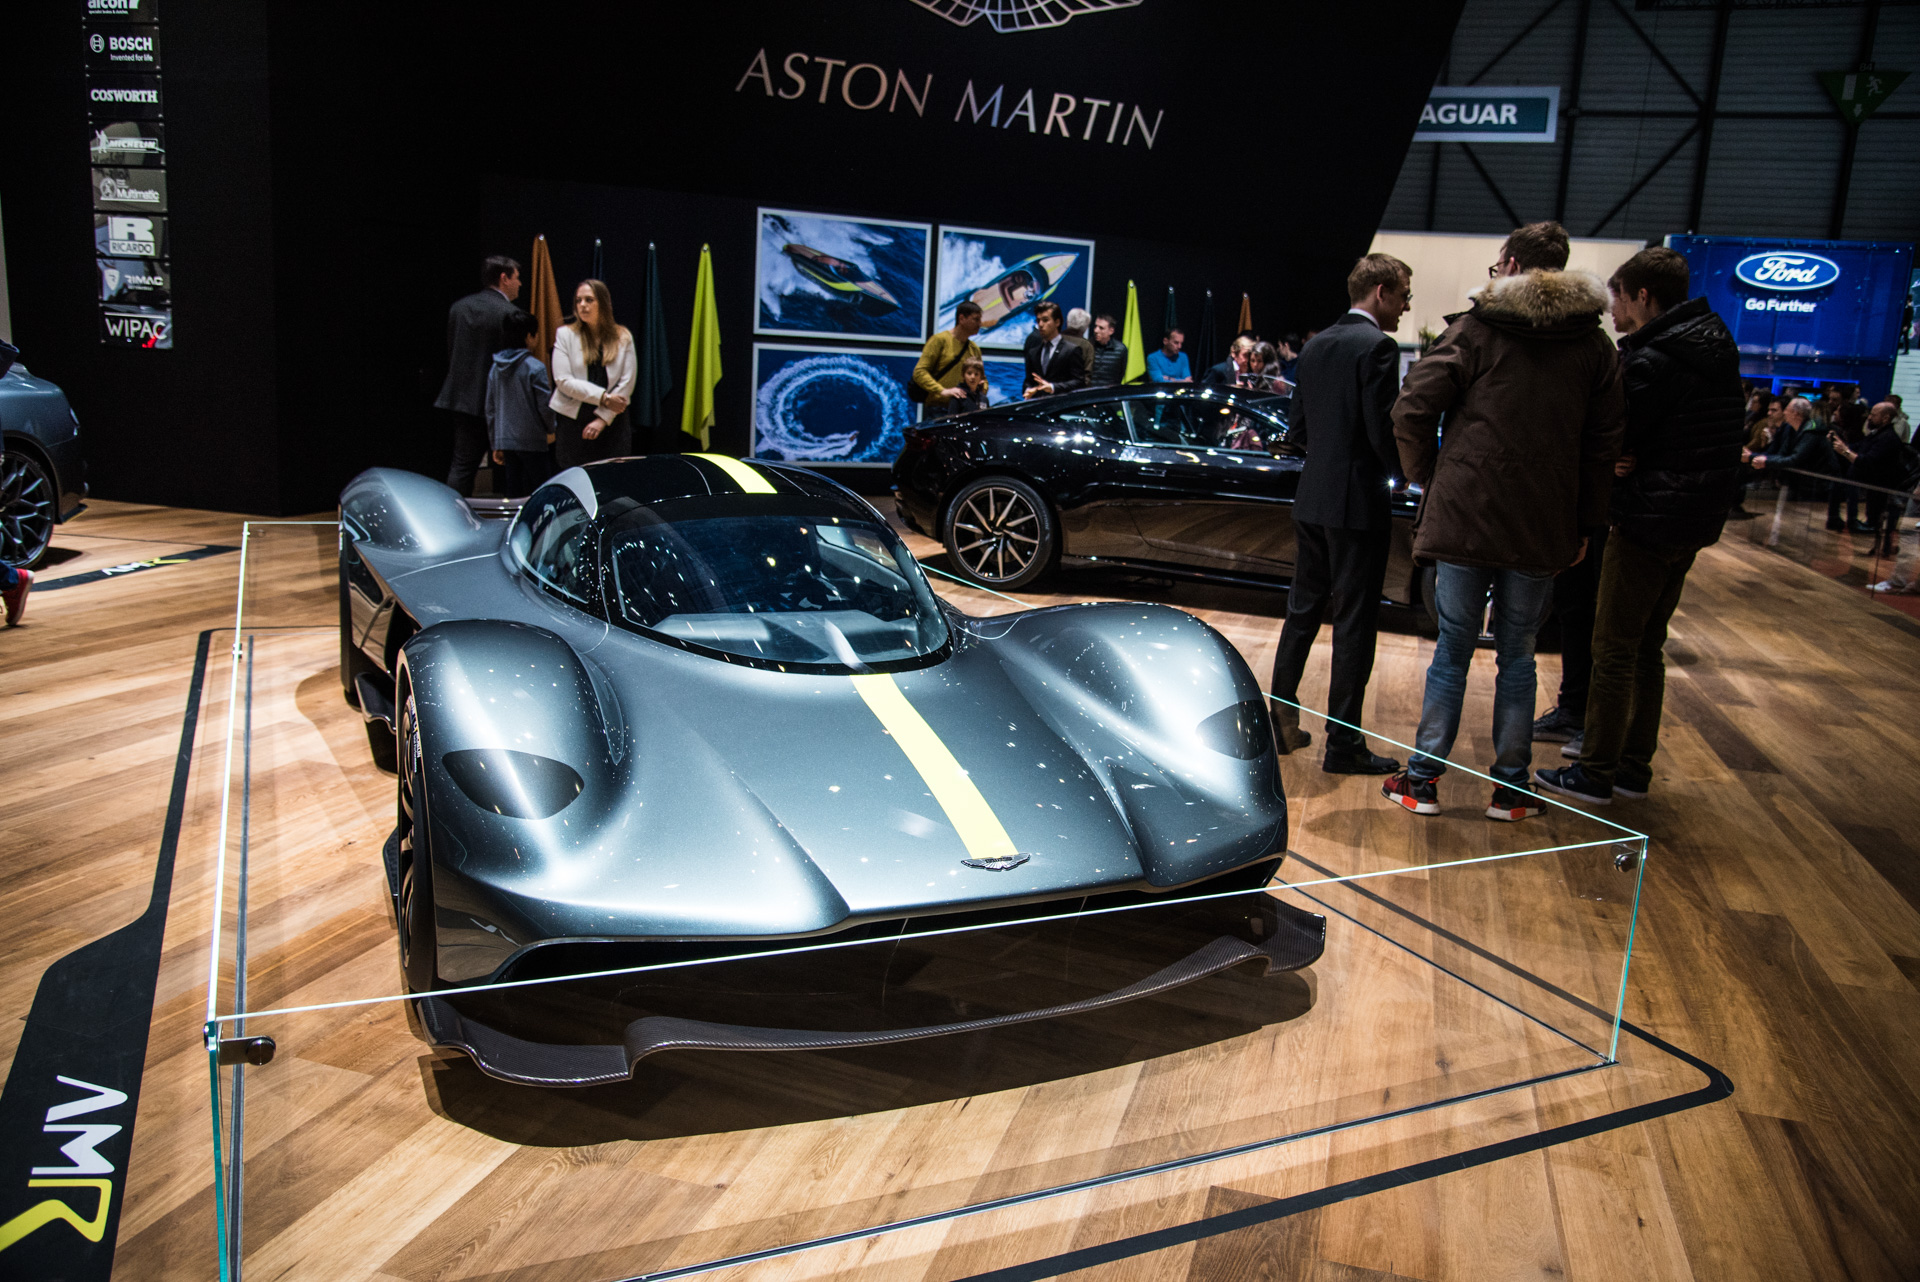 geneva-international-motor-show-igor-sinitsin-22